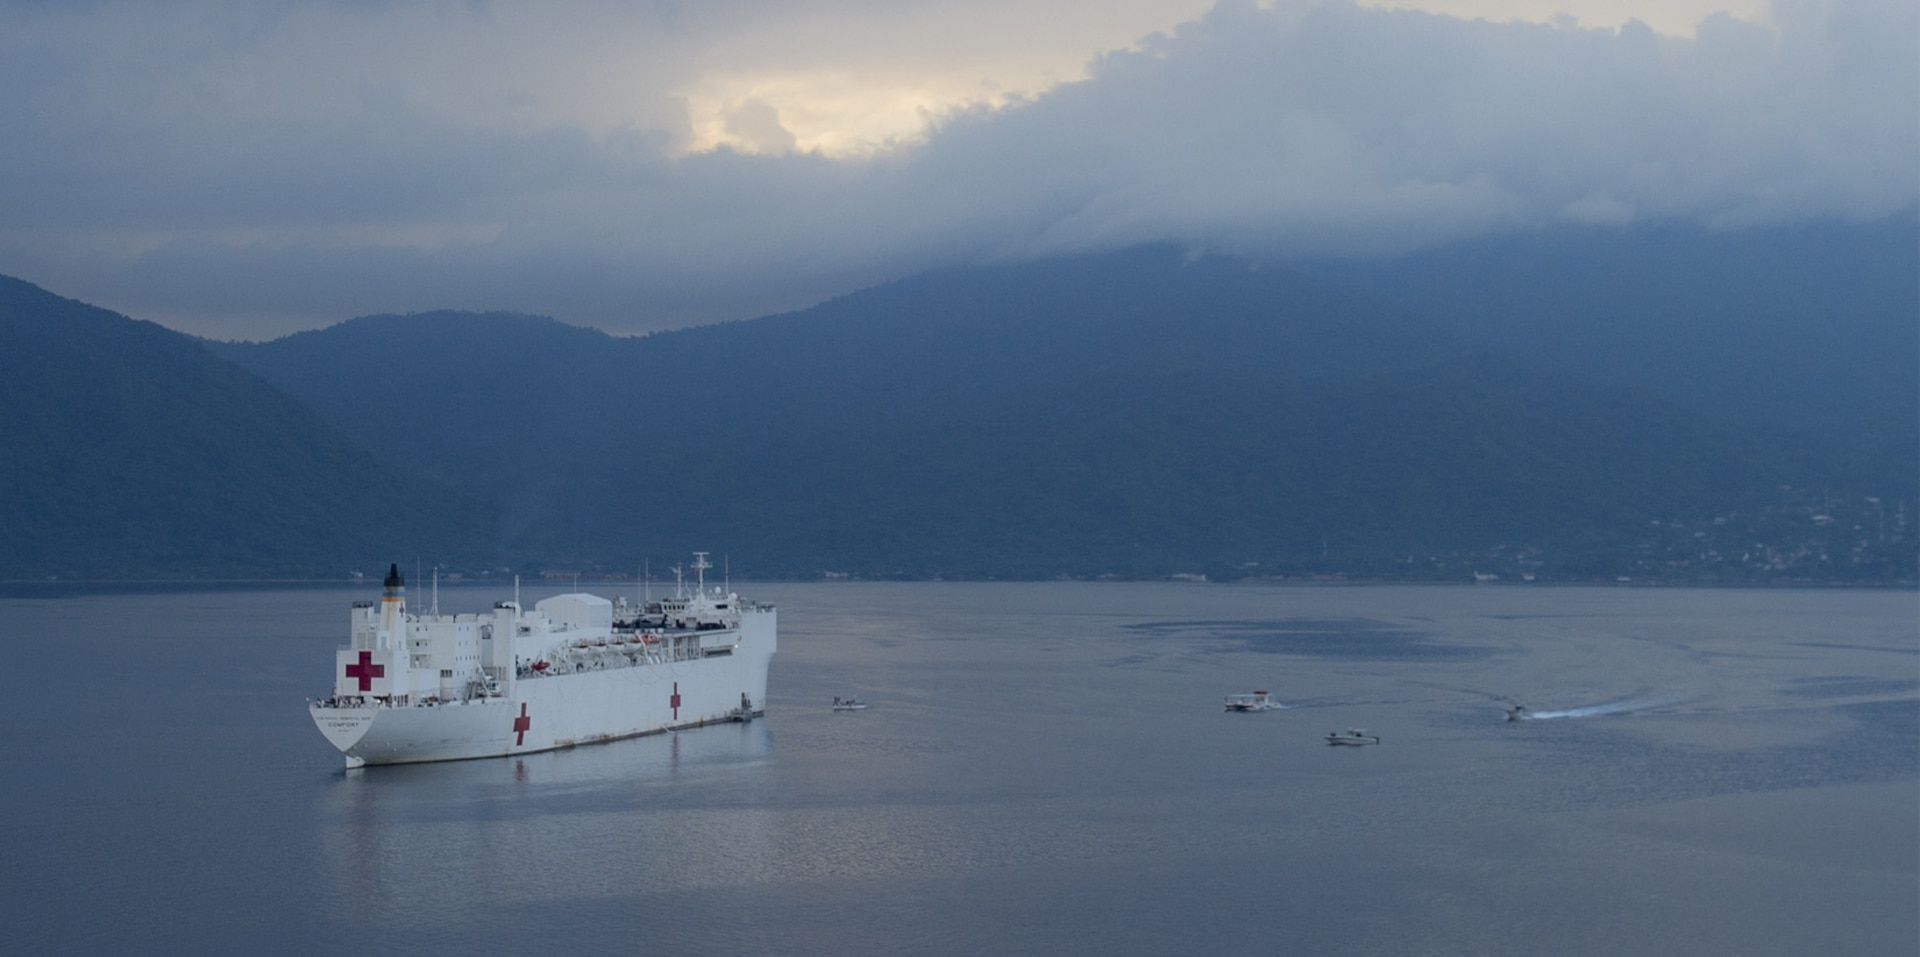 The hospital ship USNS Comfort (T-AH 20) is anchored off the coast of Honduras as part of an 11-week medical support mission to Central and South America as part of U.S. Southern Command's Enduring Promise initiative.